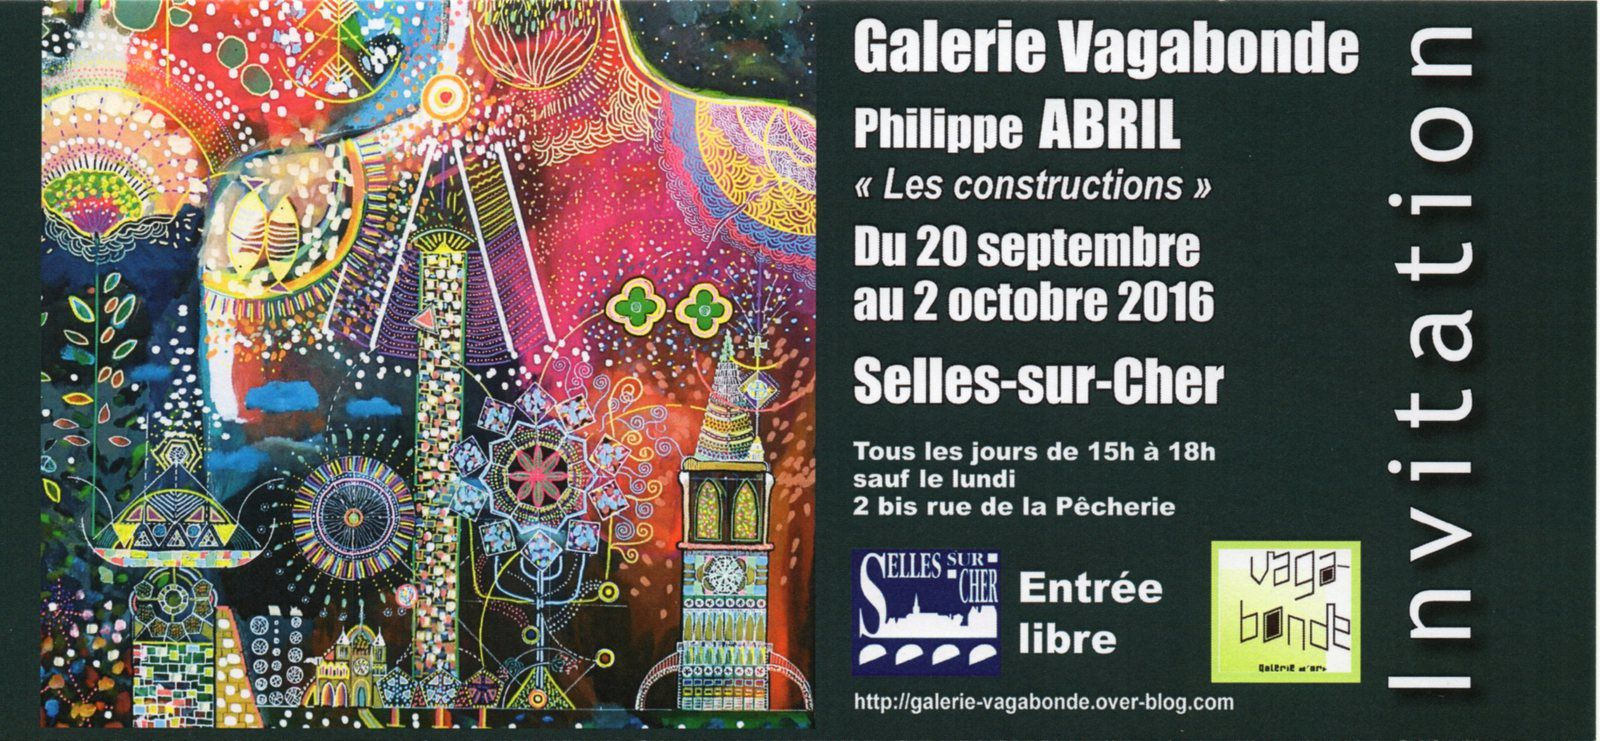 Image result for Philippe Abril